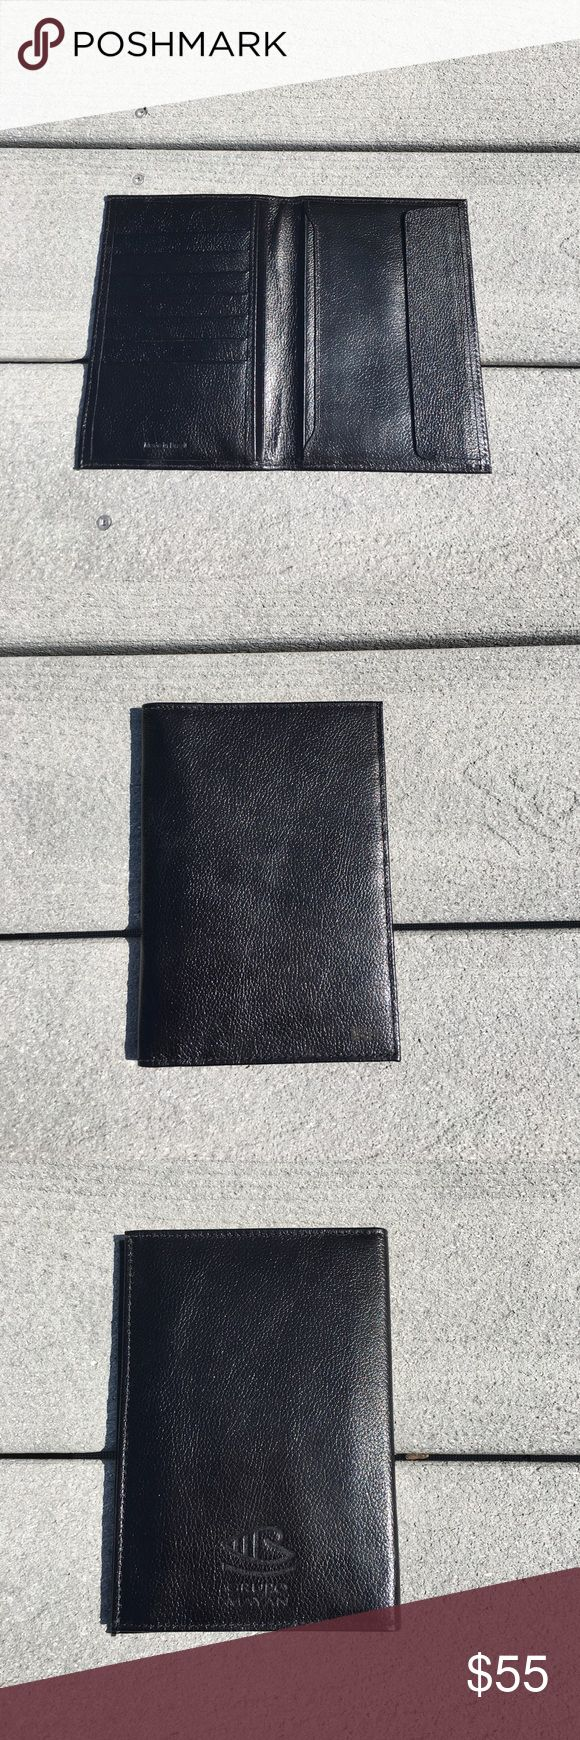 """NEW GENUINE LEATHER PASSPORT WALLET MONEY CREDIT BLACK GENUINE LEATHER PASSPORT WALLET CREDIT DOCUMENT MONEY HOLDER - NEW, NICE!  FULL GRAIN LEATHER - VERY NICE SHEEN!  STAMPED """"MADE IN BRAZIL""""  INITIALS STAMPED FAINTLY (BARELY NOTICEABLE) ON FRONT,  LOGO ON BACK. ONE WITH INITIALS """"JHH""""; OTHER """"IRH""""  IN ORIGINAL BOX  6.5"""" H x 4.5"""" W  LEFT: 7 HORIZONTAL CREDIT CARDS SLOTS & 2 VERTICAL SLOTS FOR MONEY/DOCUMENTS  RIGHT: 2 VERTICAL SLEEVES - FOR PASSPORT/DOCUMENTS & FLAP TO COVER PASSPORT…"""